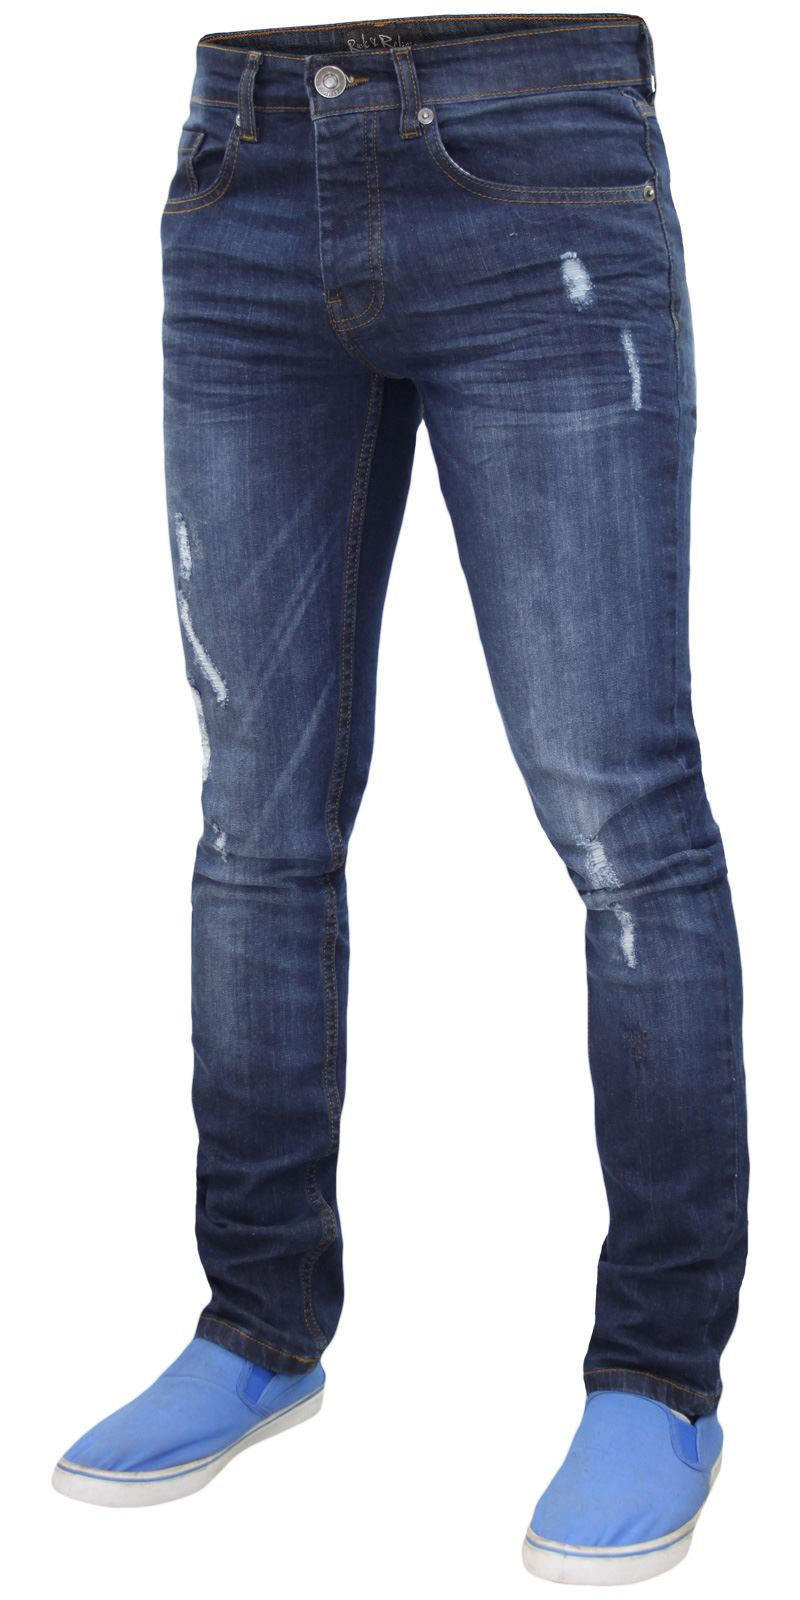 Mens-Skinny-Stretch-Ripped-Jeans-Slim-Fit-Casual-Trousers-Denim-Pants-All-Sizes thumbnail 7